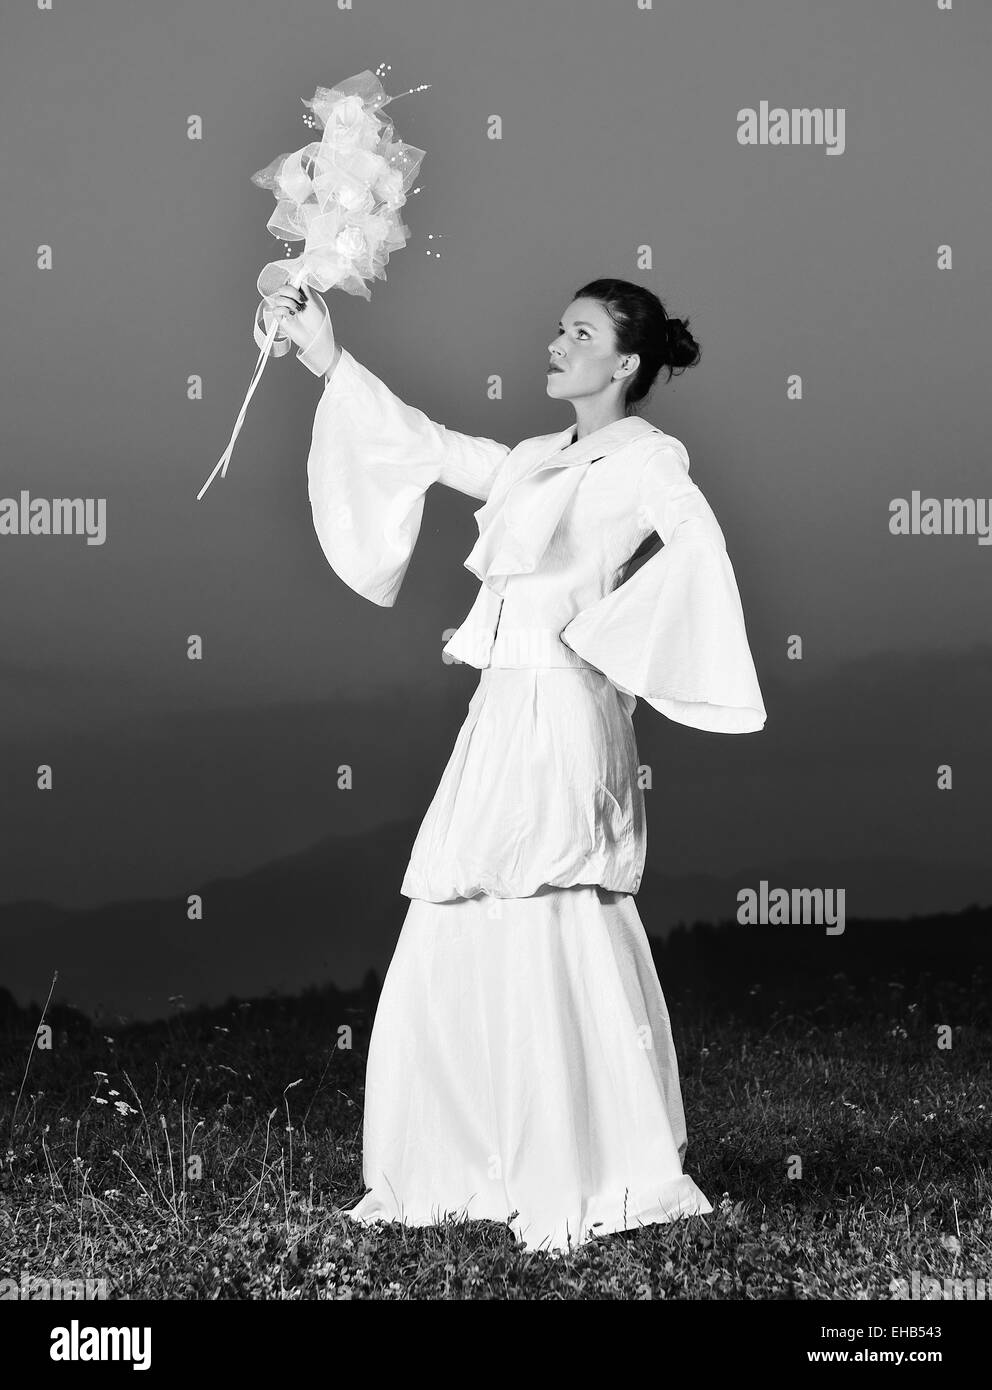 beautiful bride outdoor after wedding ceremny - Stock Image